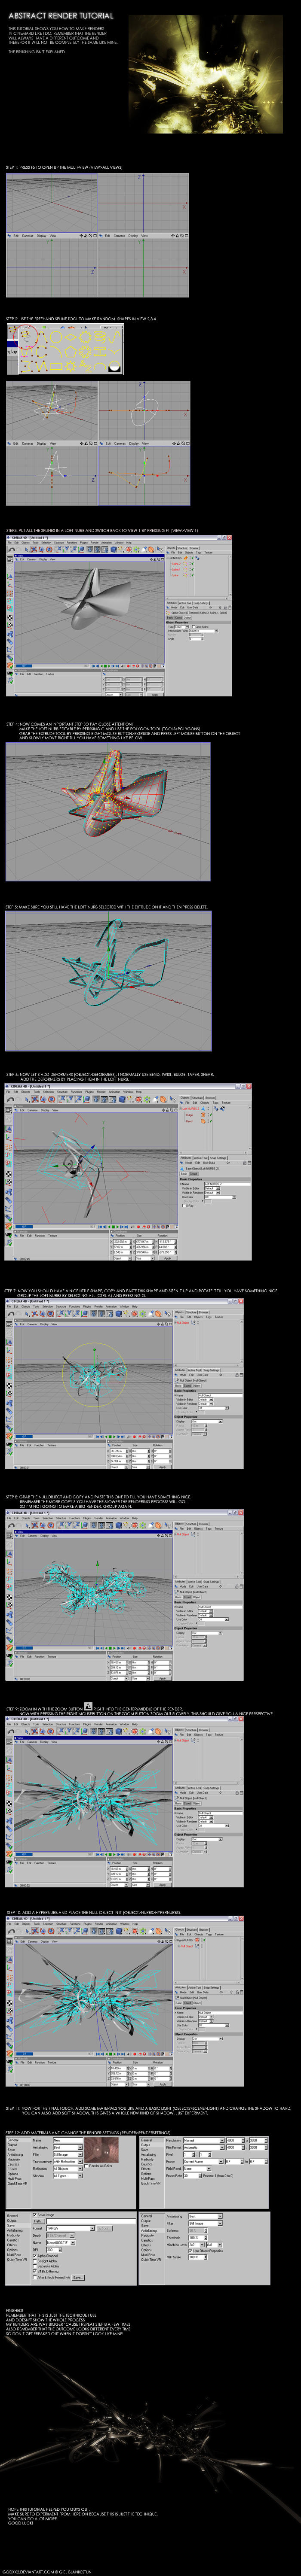 Cinema 4d modelling tutorial by Godxx2